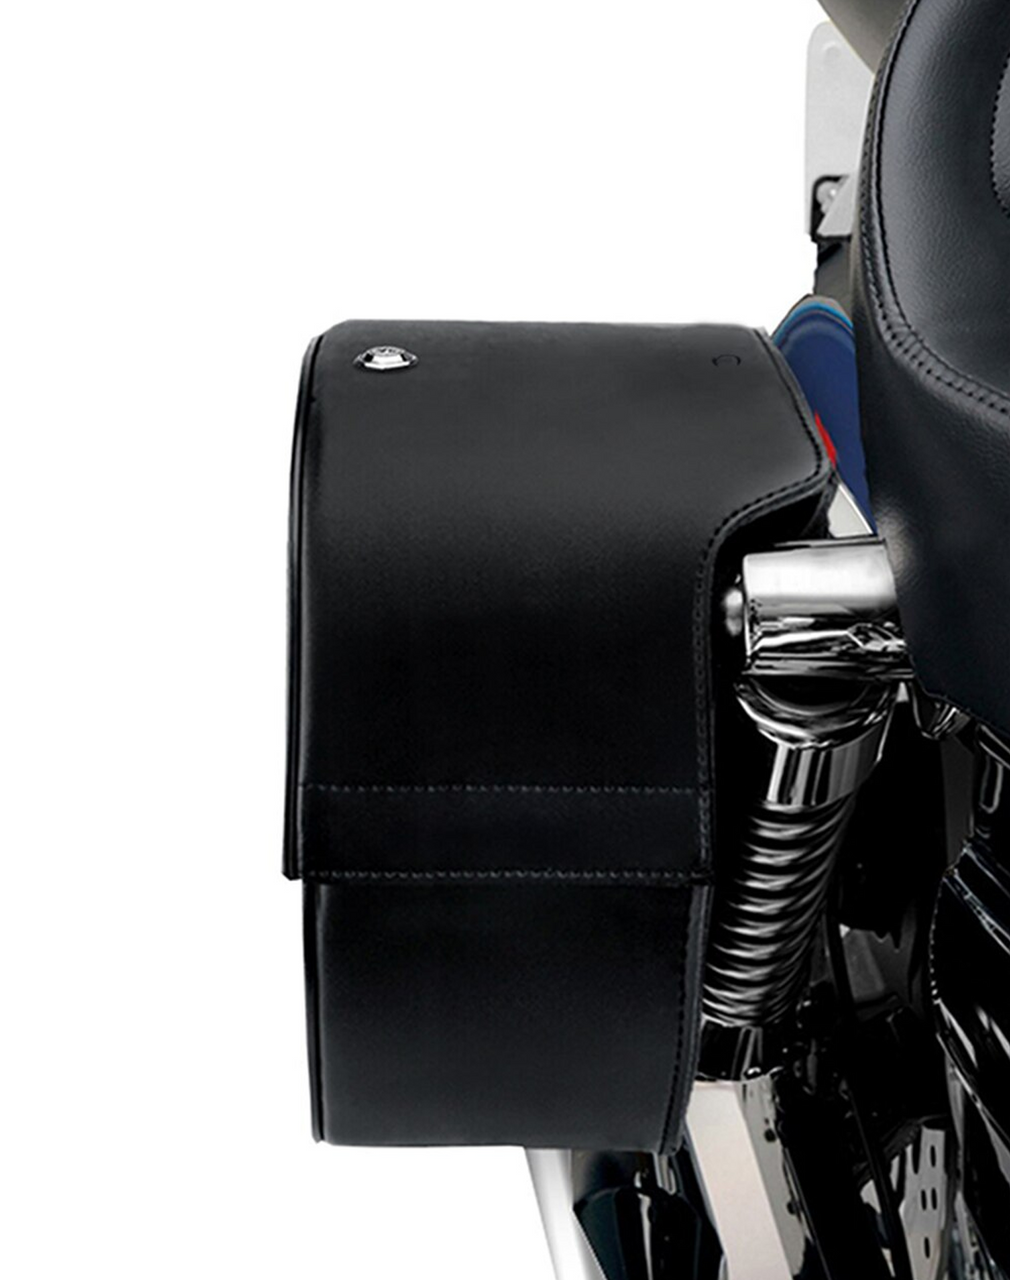 Viking Shock Cutout SS Slanted Studded Large Motorcycle Saddlebags For Harley Dyna Low Rider FXDL Shock Cutout View